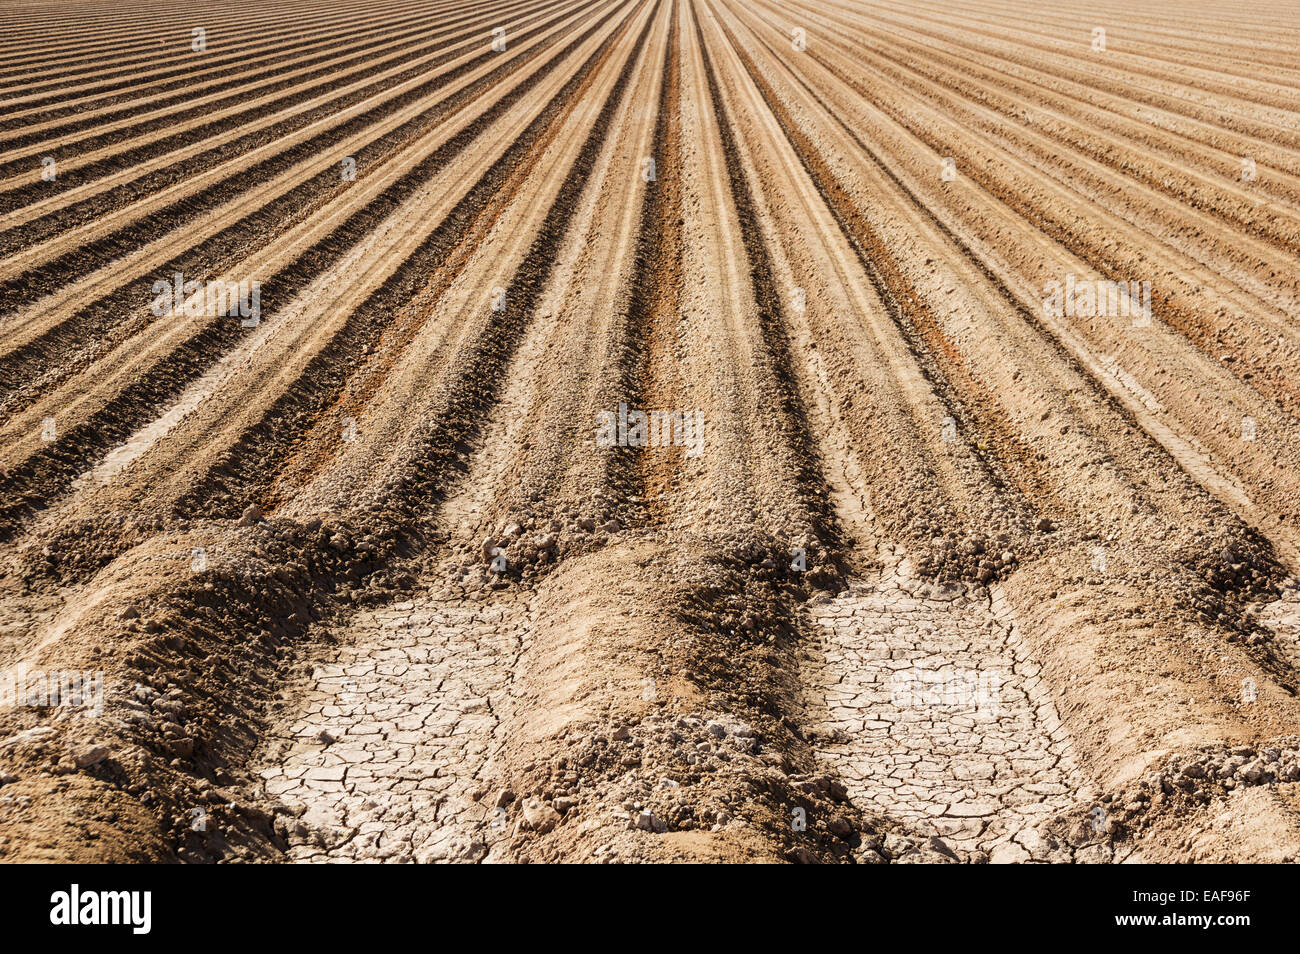 prepared farm soil with parallel rows of dirt ready for planting - Stock Image